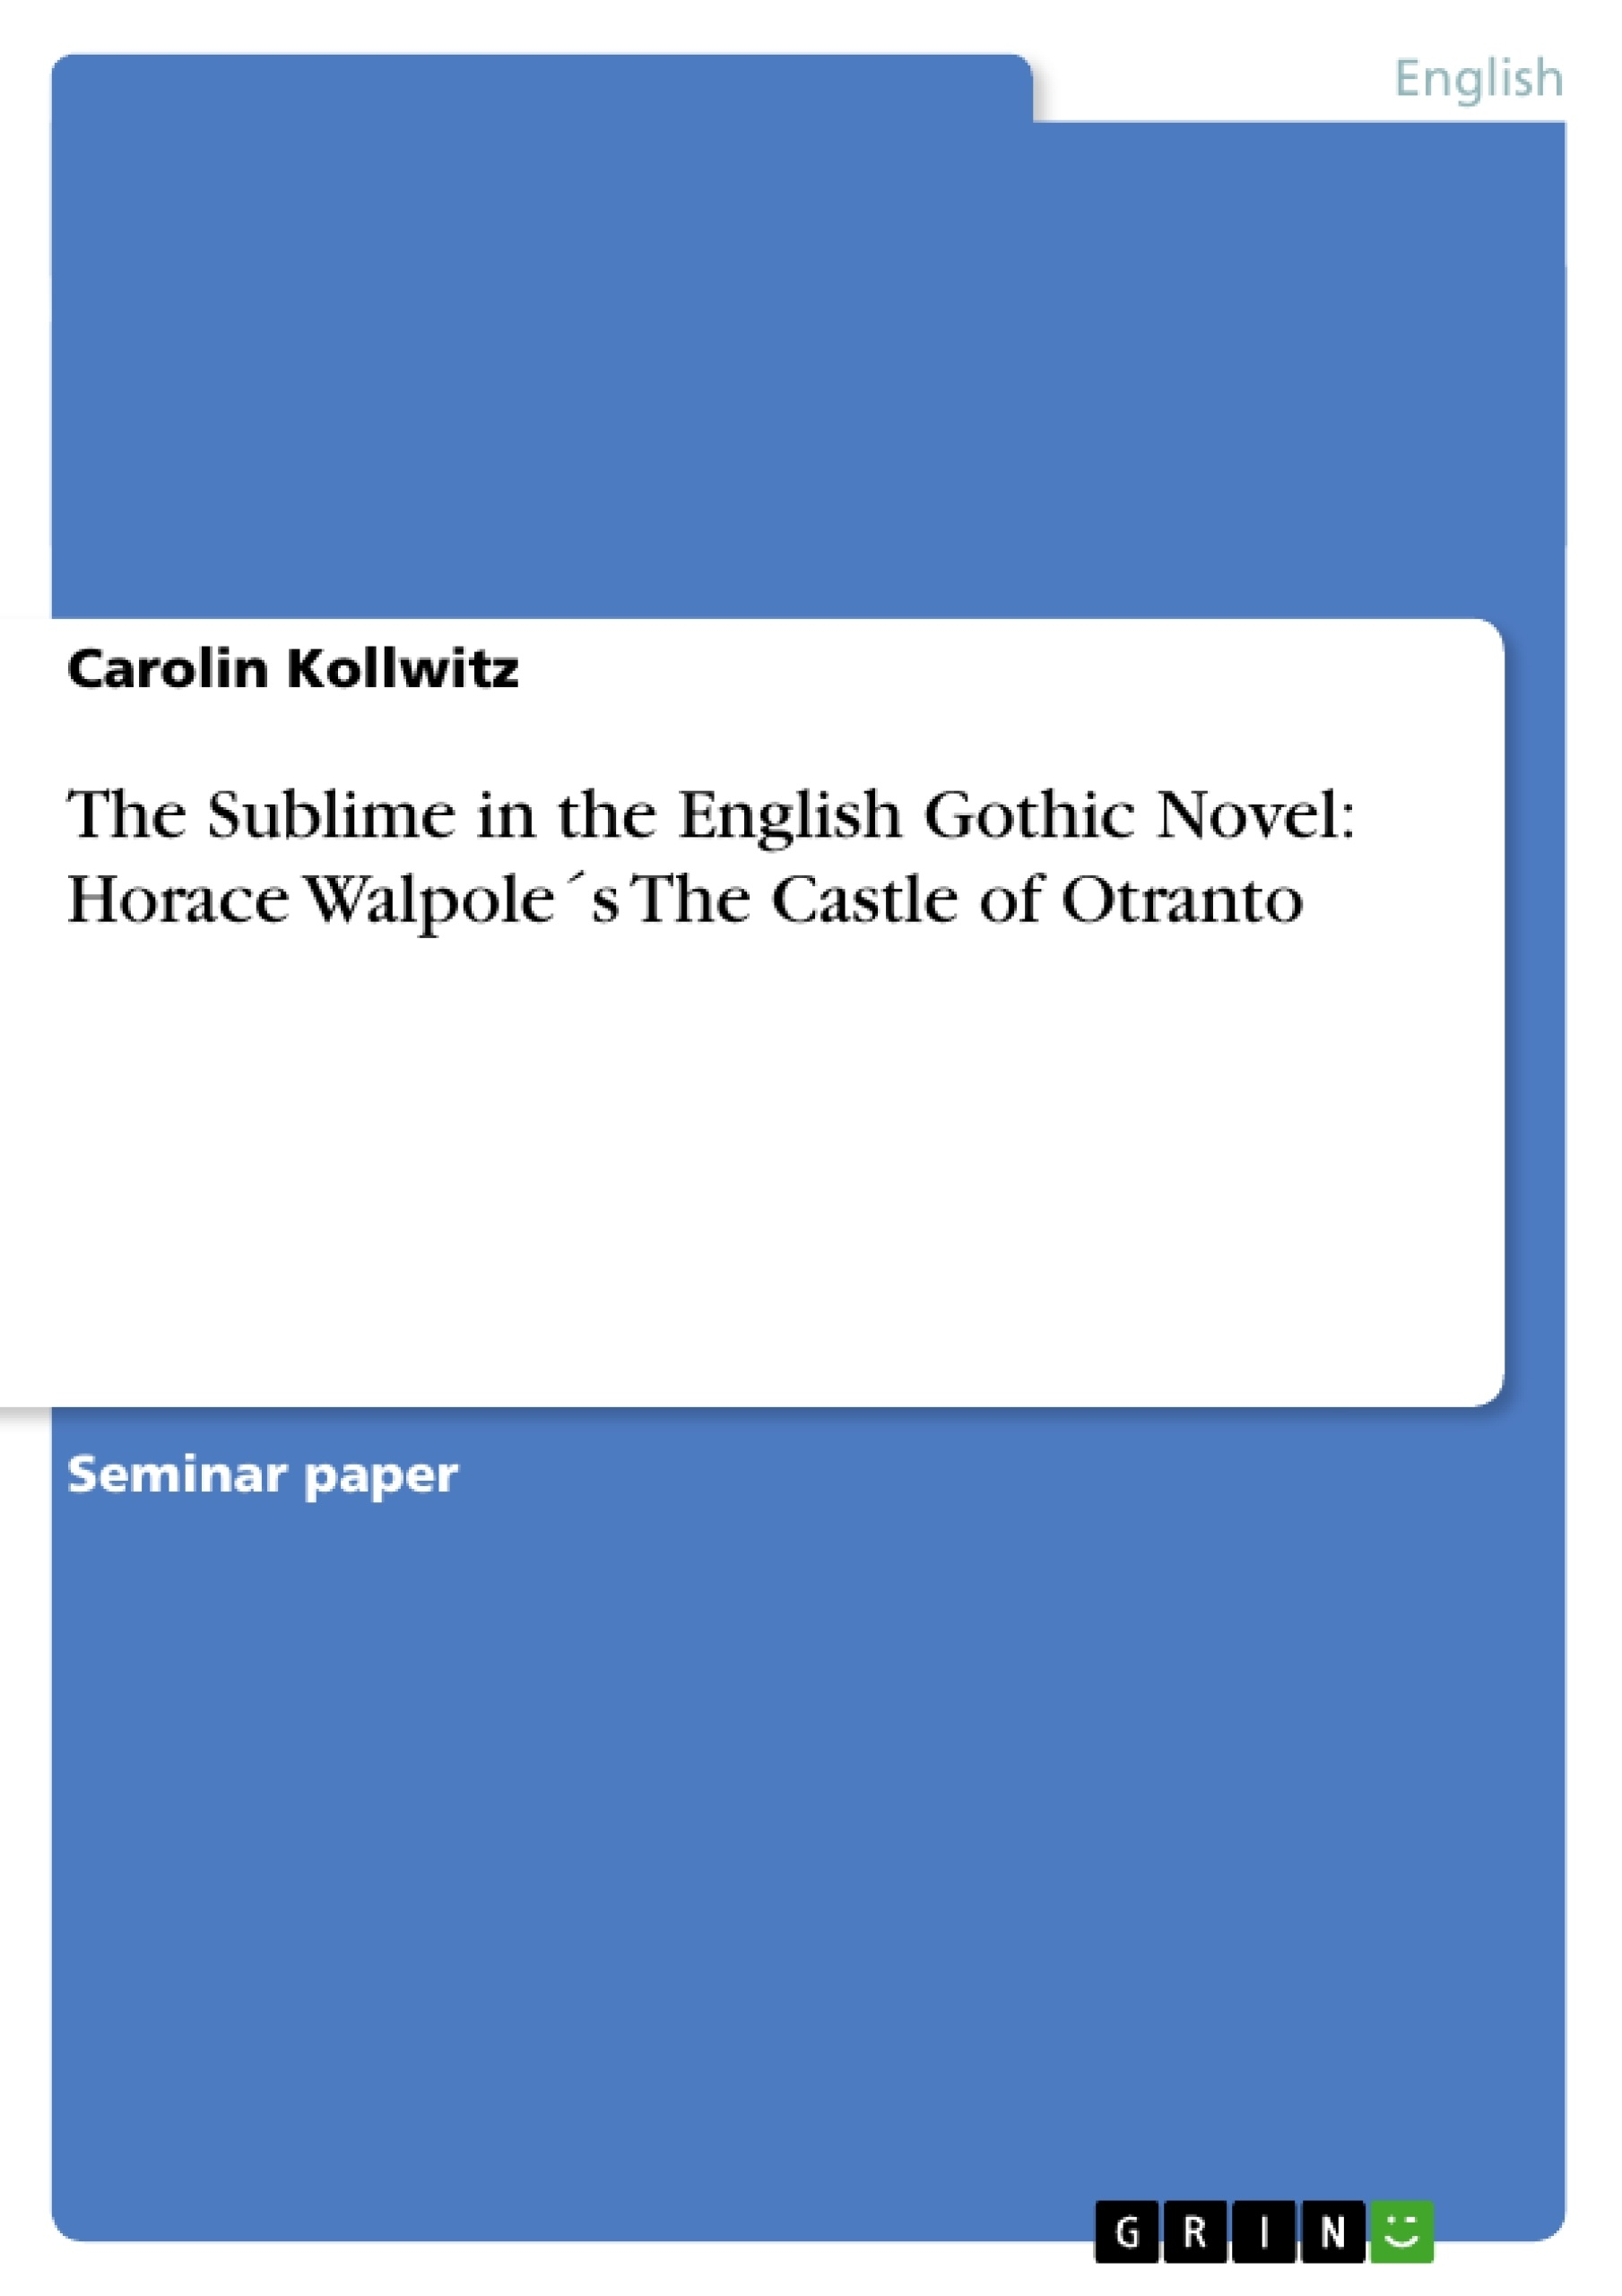 Title: The Sublime in the English Gothic Novel: Horace Walpole´s The Castle of Otranto